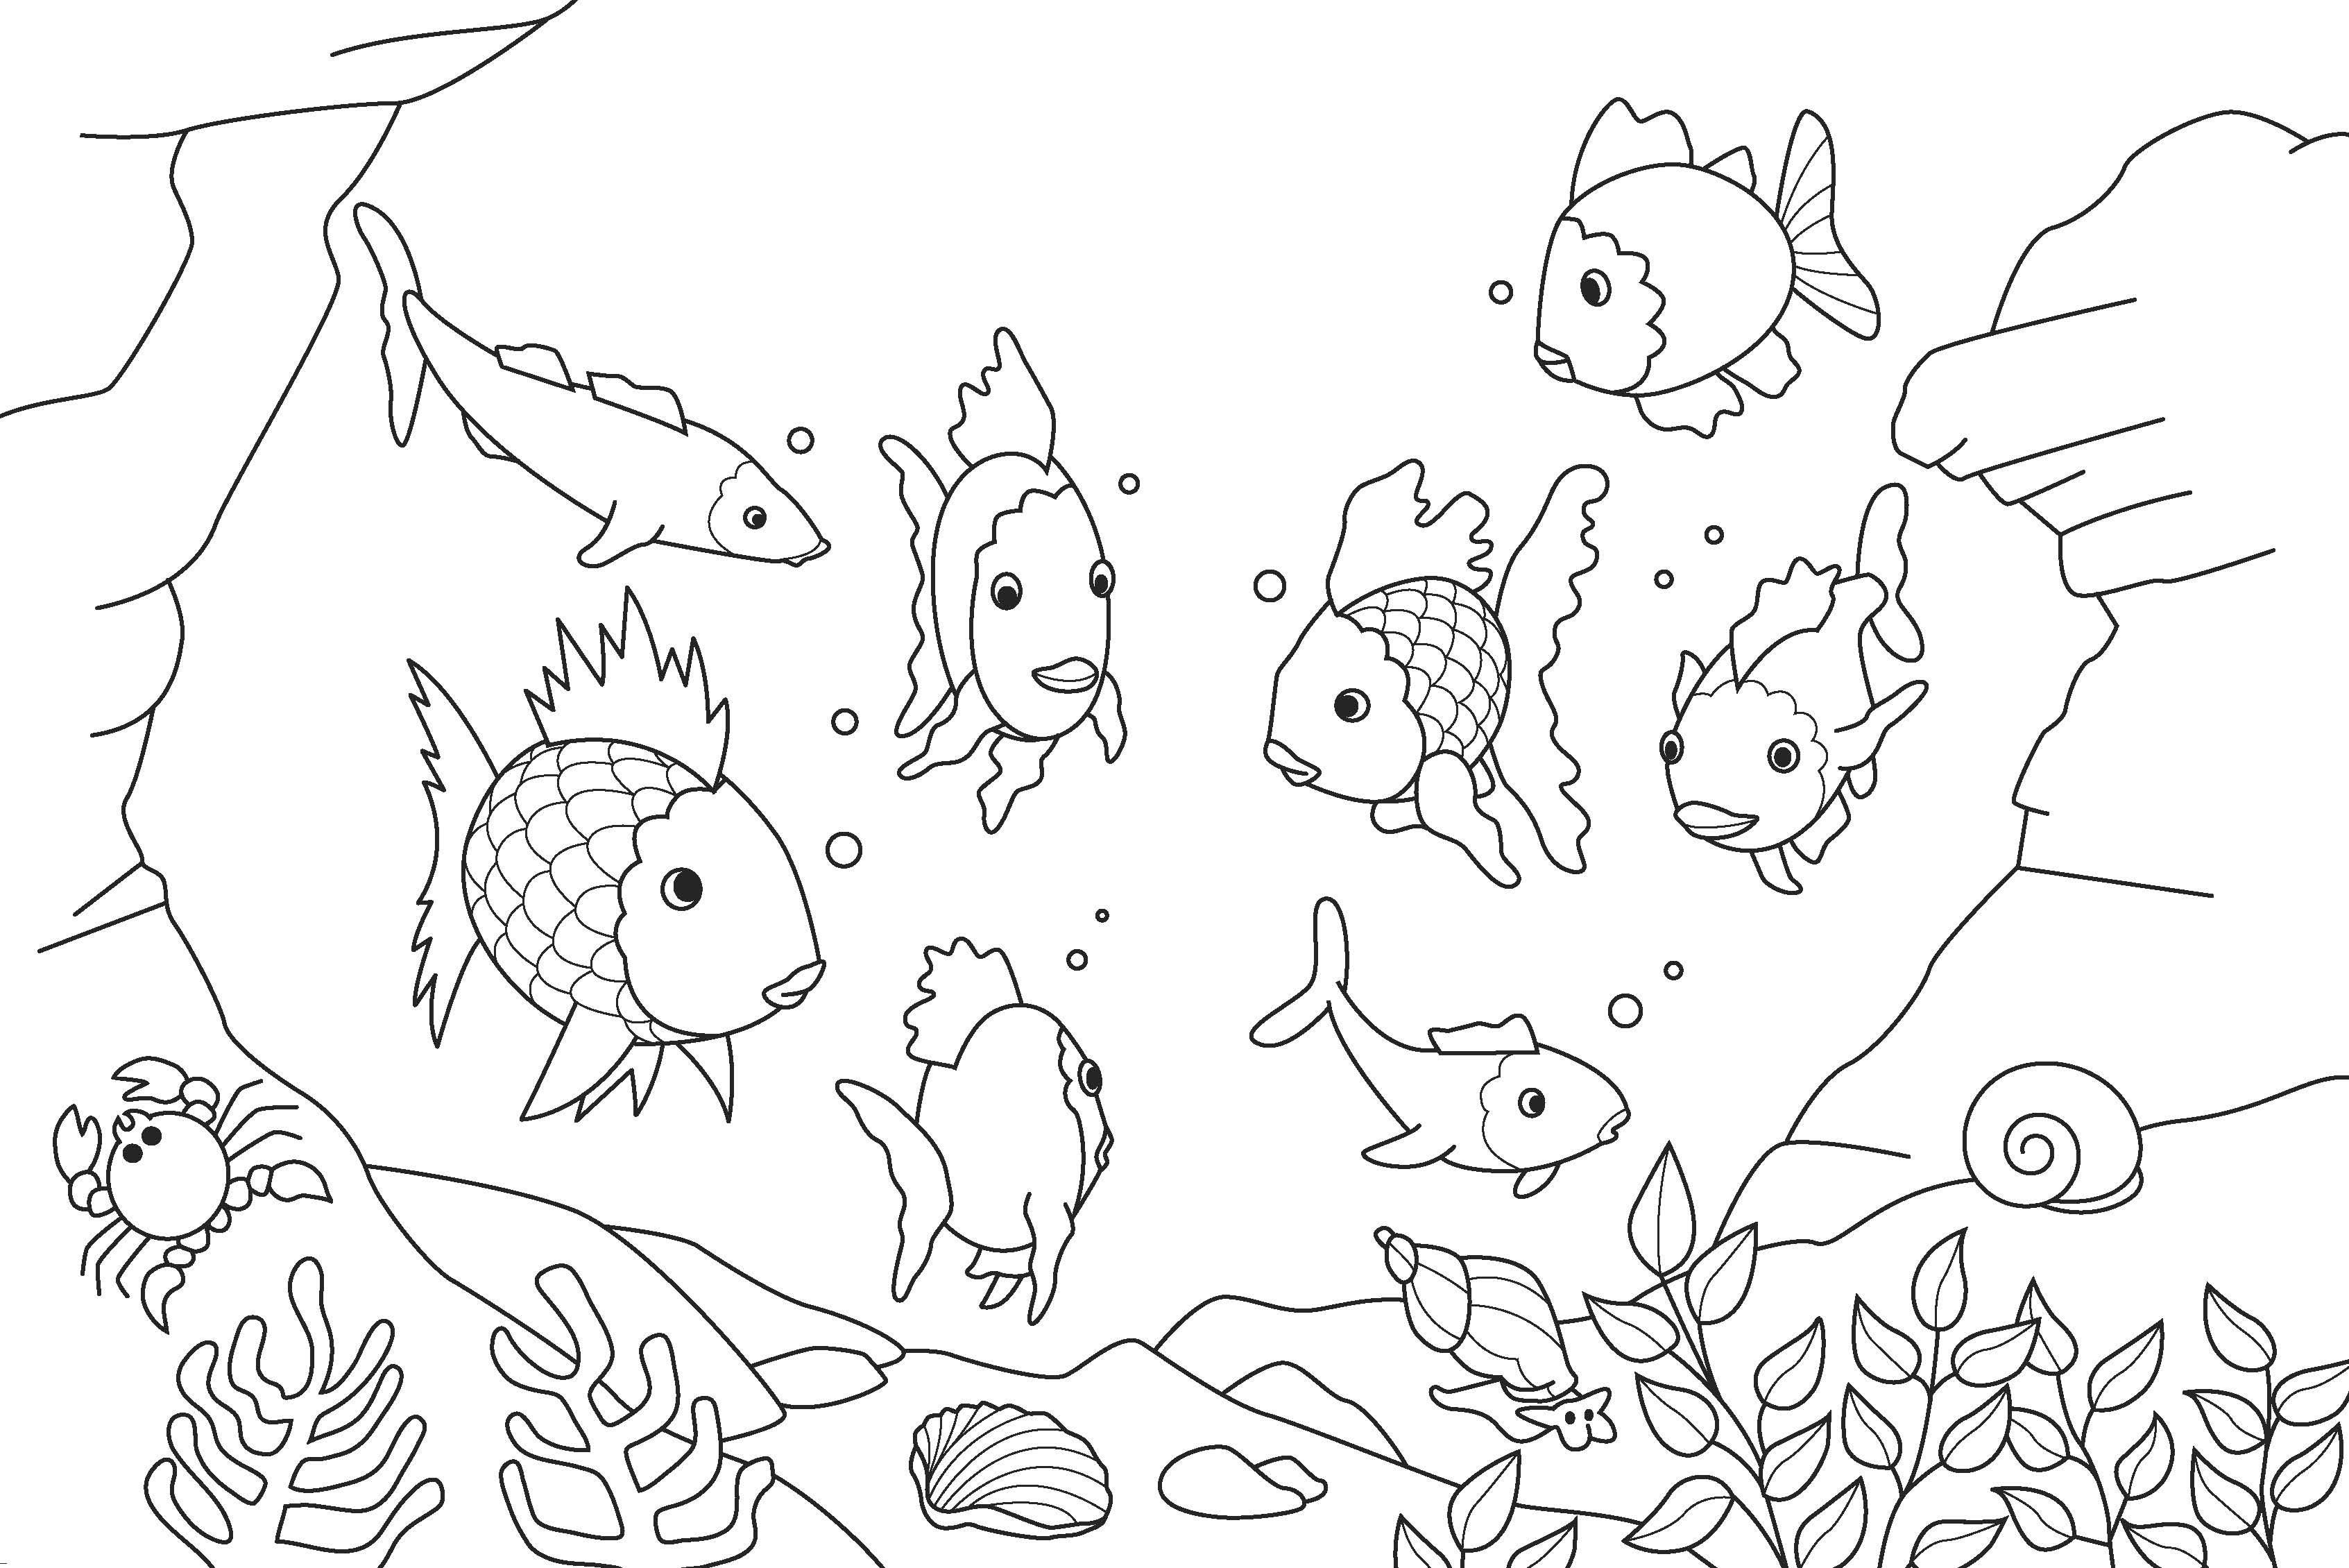 fish coloring pages kids - Colouring Pages For Kids